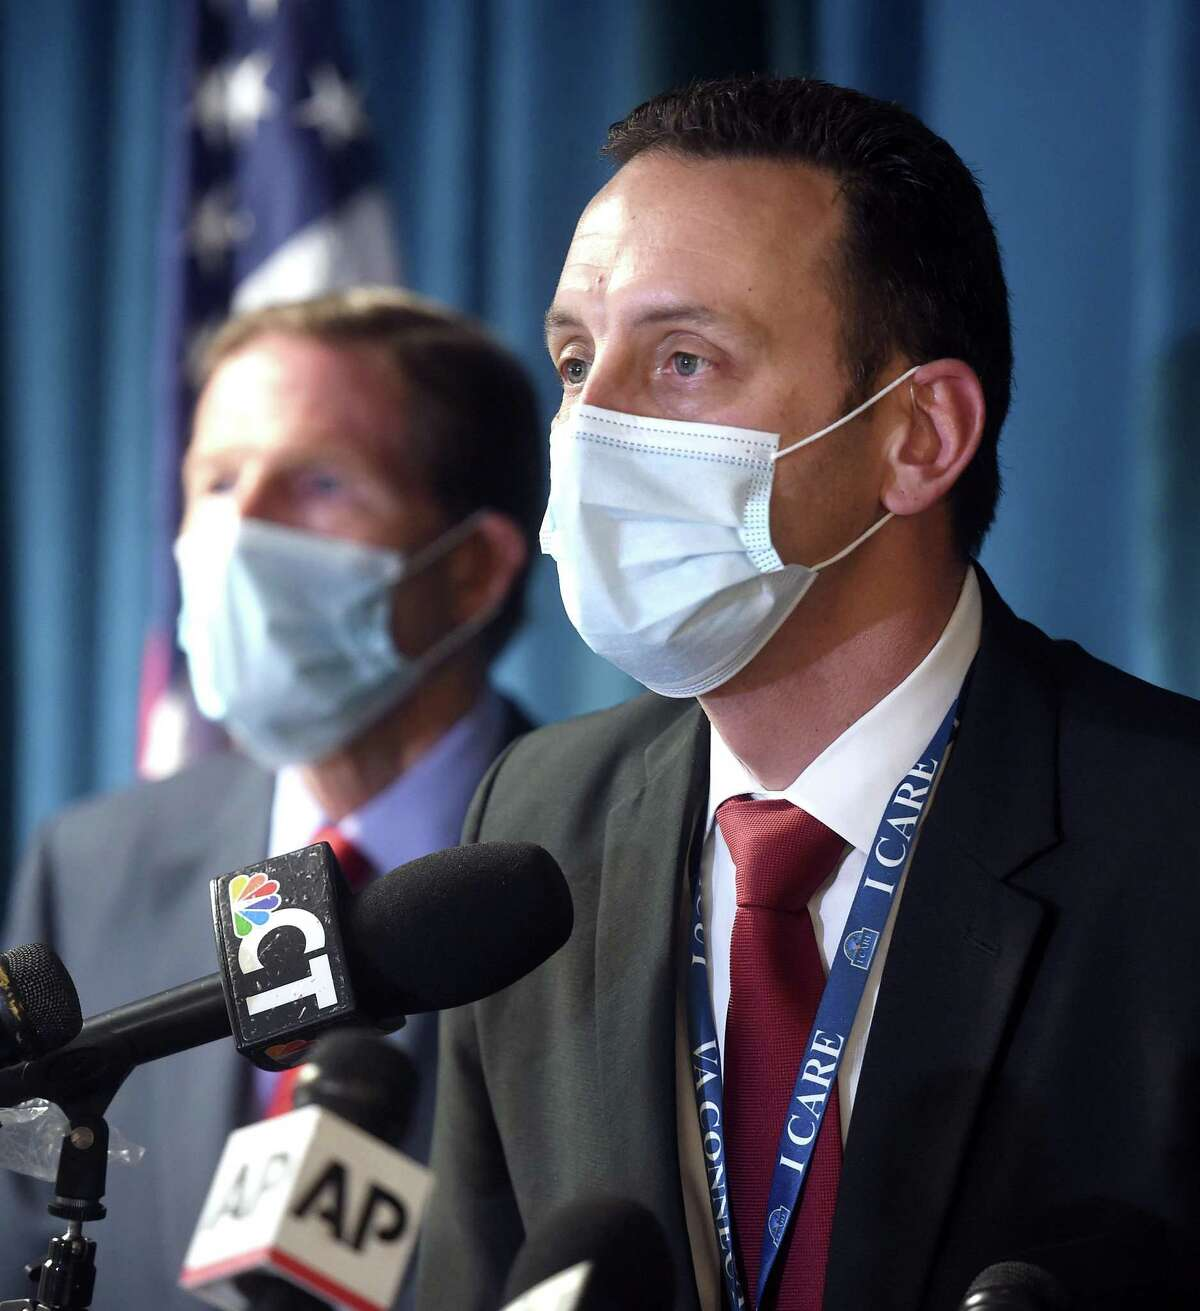 U.S. Senator Richard Blumenthal (left) listens to Alfred Montoya, Jr., medical director of the VA Connecticut Healthcare System, speak at a press conference following an explosion at the boiler plant at the West Haven VA Hospital that took two lives on November 13, 2020.